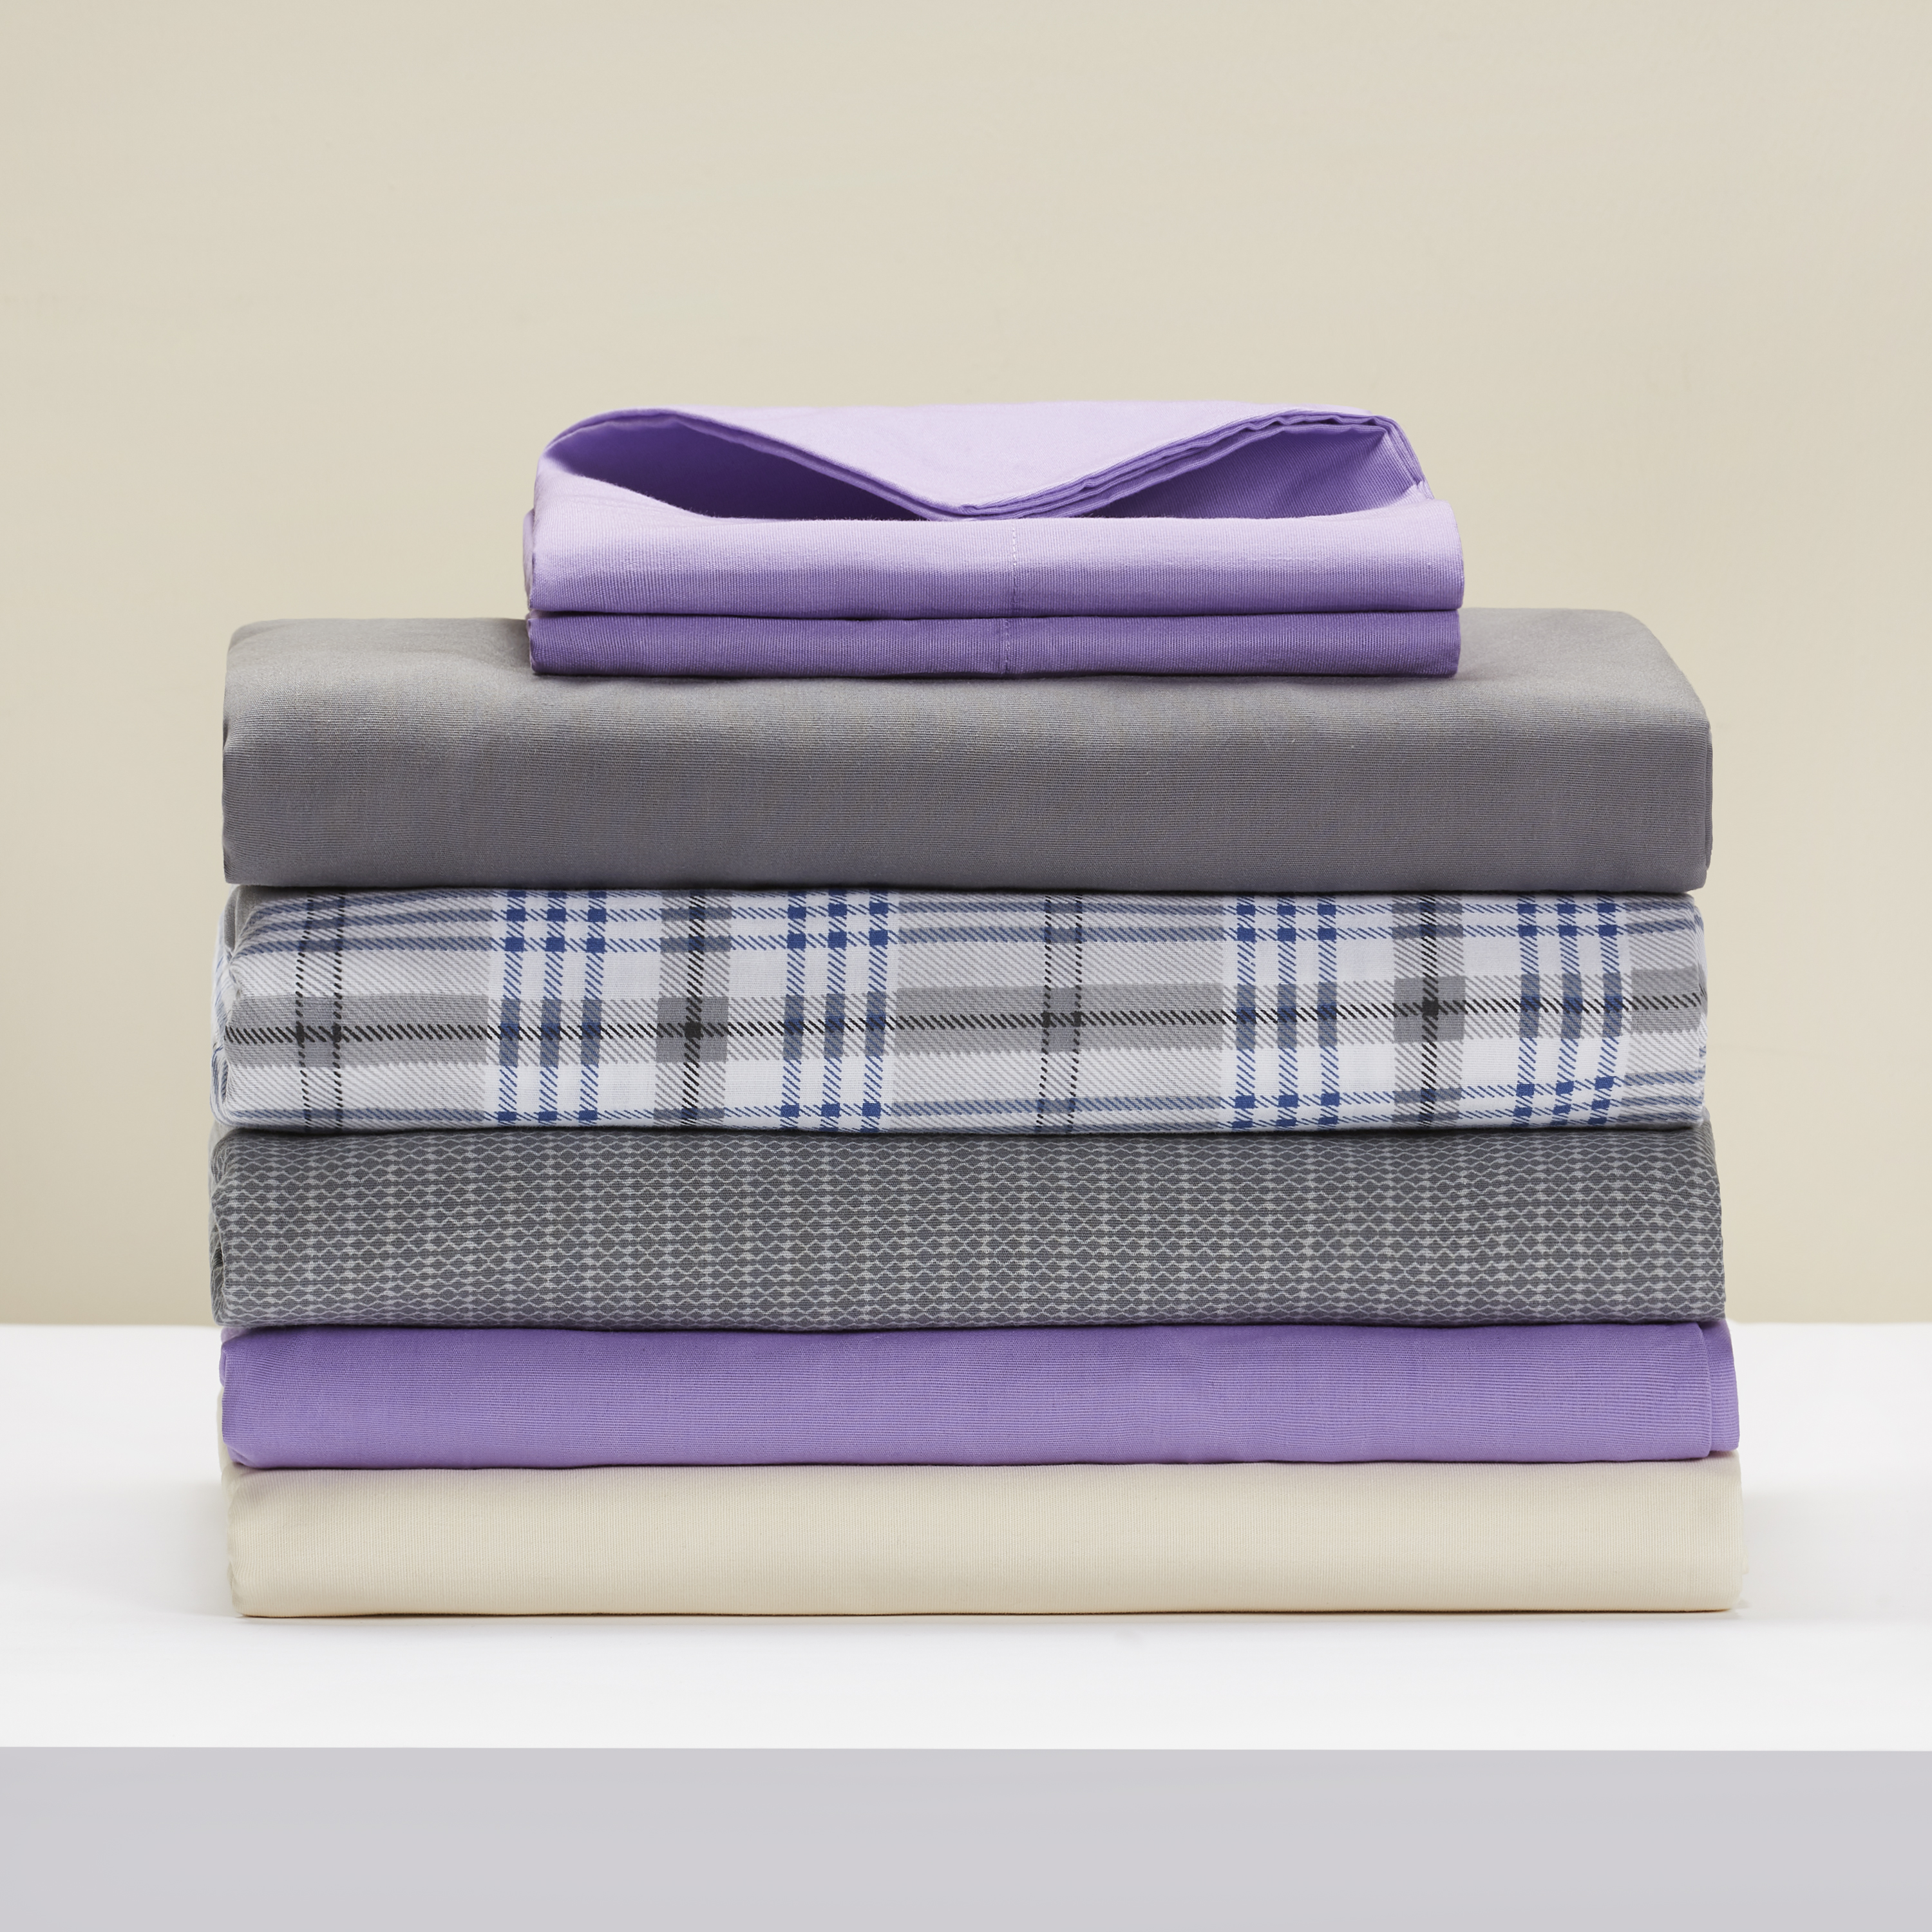 Mainstays 200 Thread Count violet Twin Bedding Flat Sheet Collection